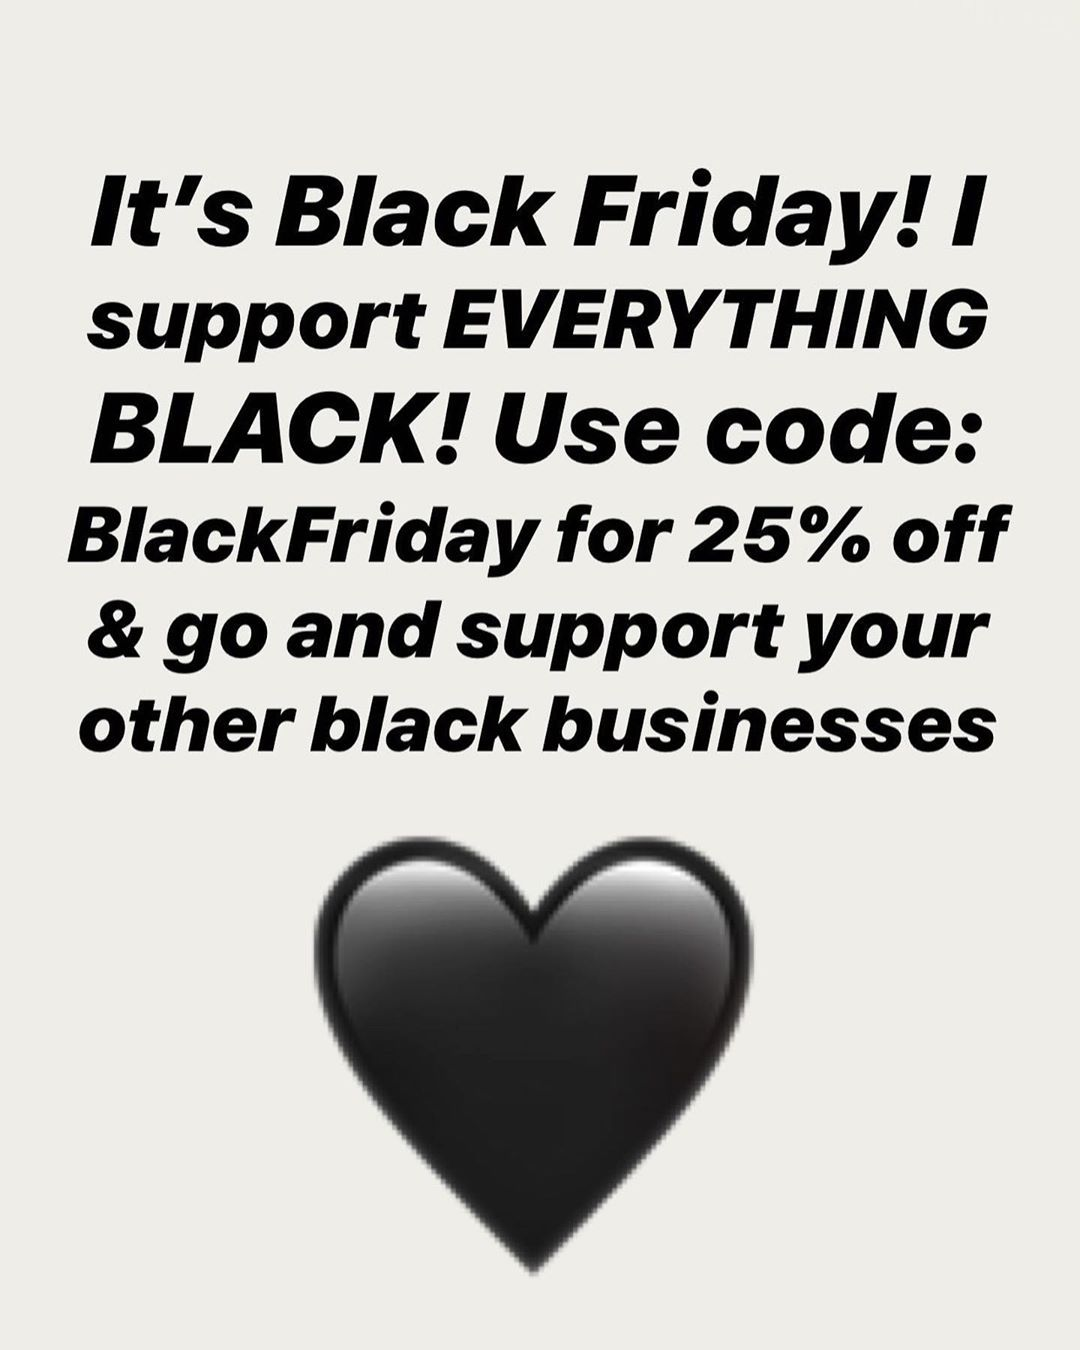 Did you support your Black Businesses today? It's not too late...use code: BlackFriday for 25% off!! 🖤✊🏾🖤 . . .